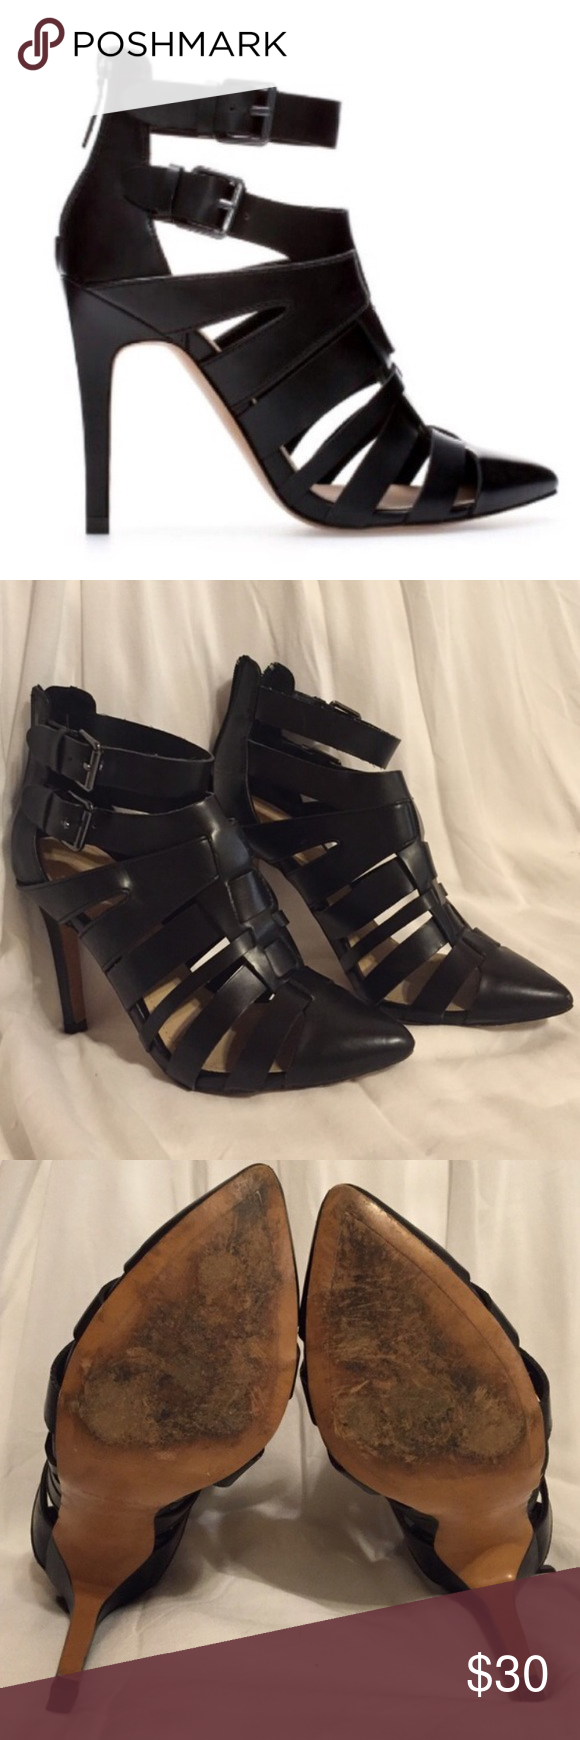 Zara Heels with Zipper Used Zara black caged heels with buckle details. Can be worn casually or dressy. Has a zipper on the back to make it easy to put on and take off. Great condition. Small flaw in left toe shown on last picture. No Box. SIZE 37 Zara Shoes Heels